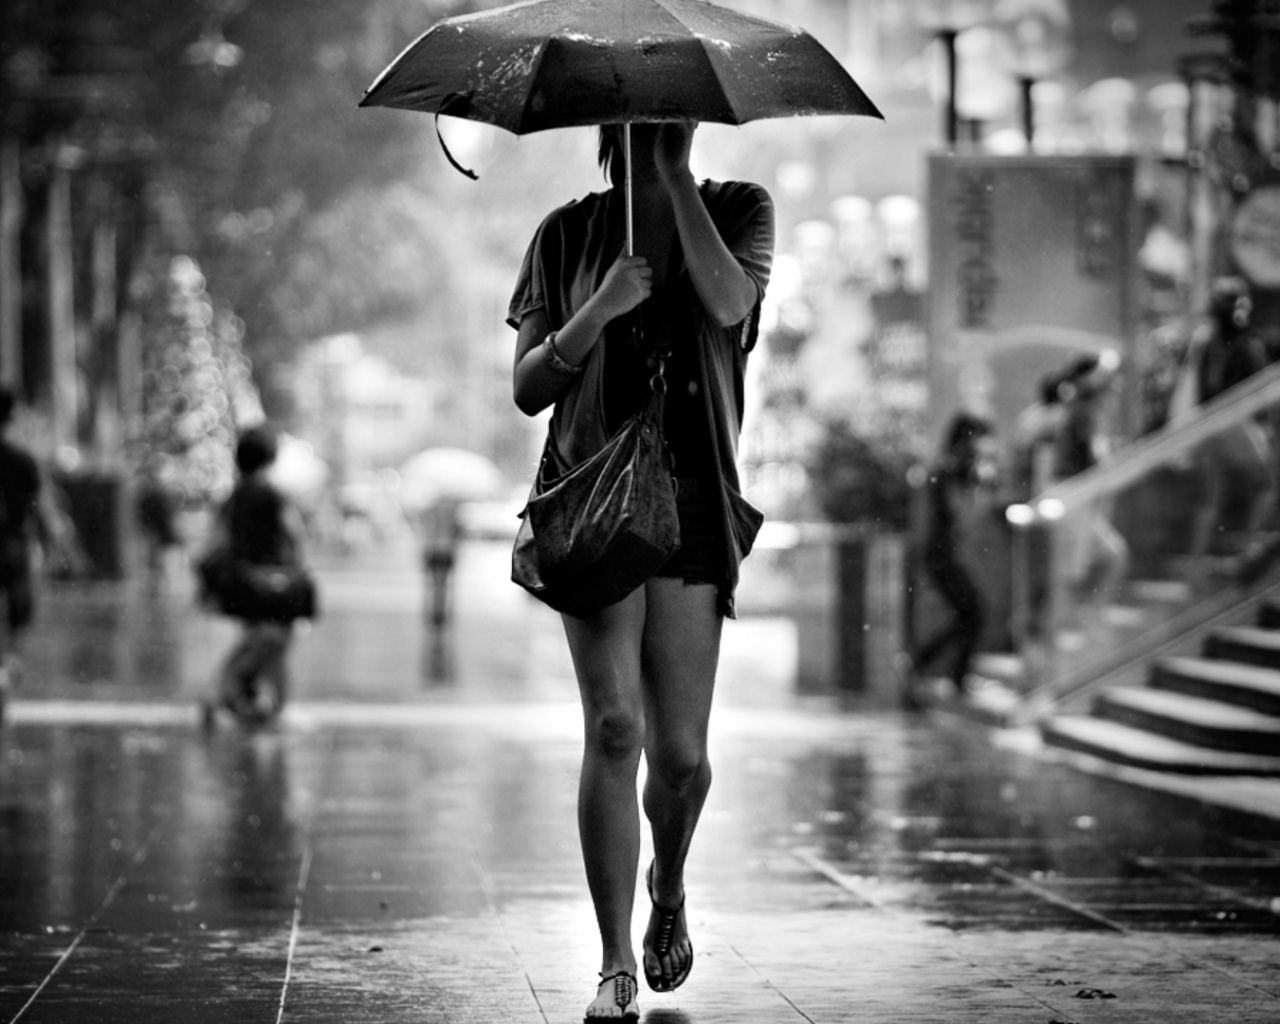 Such a Sweet Gift – An Umbrella in the Rain From a ...